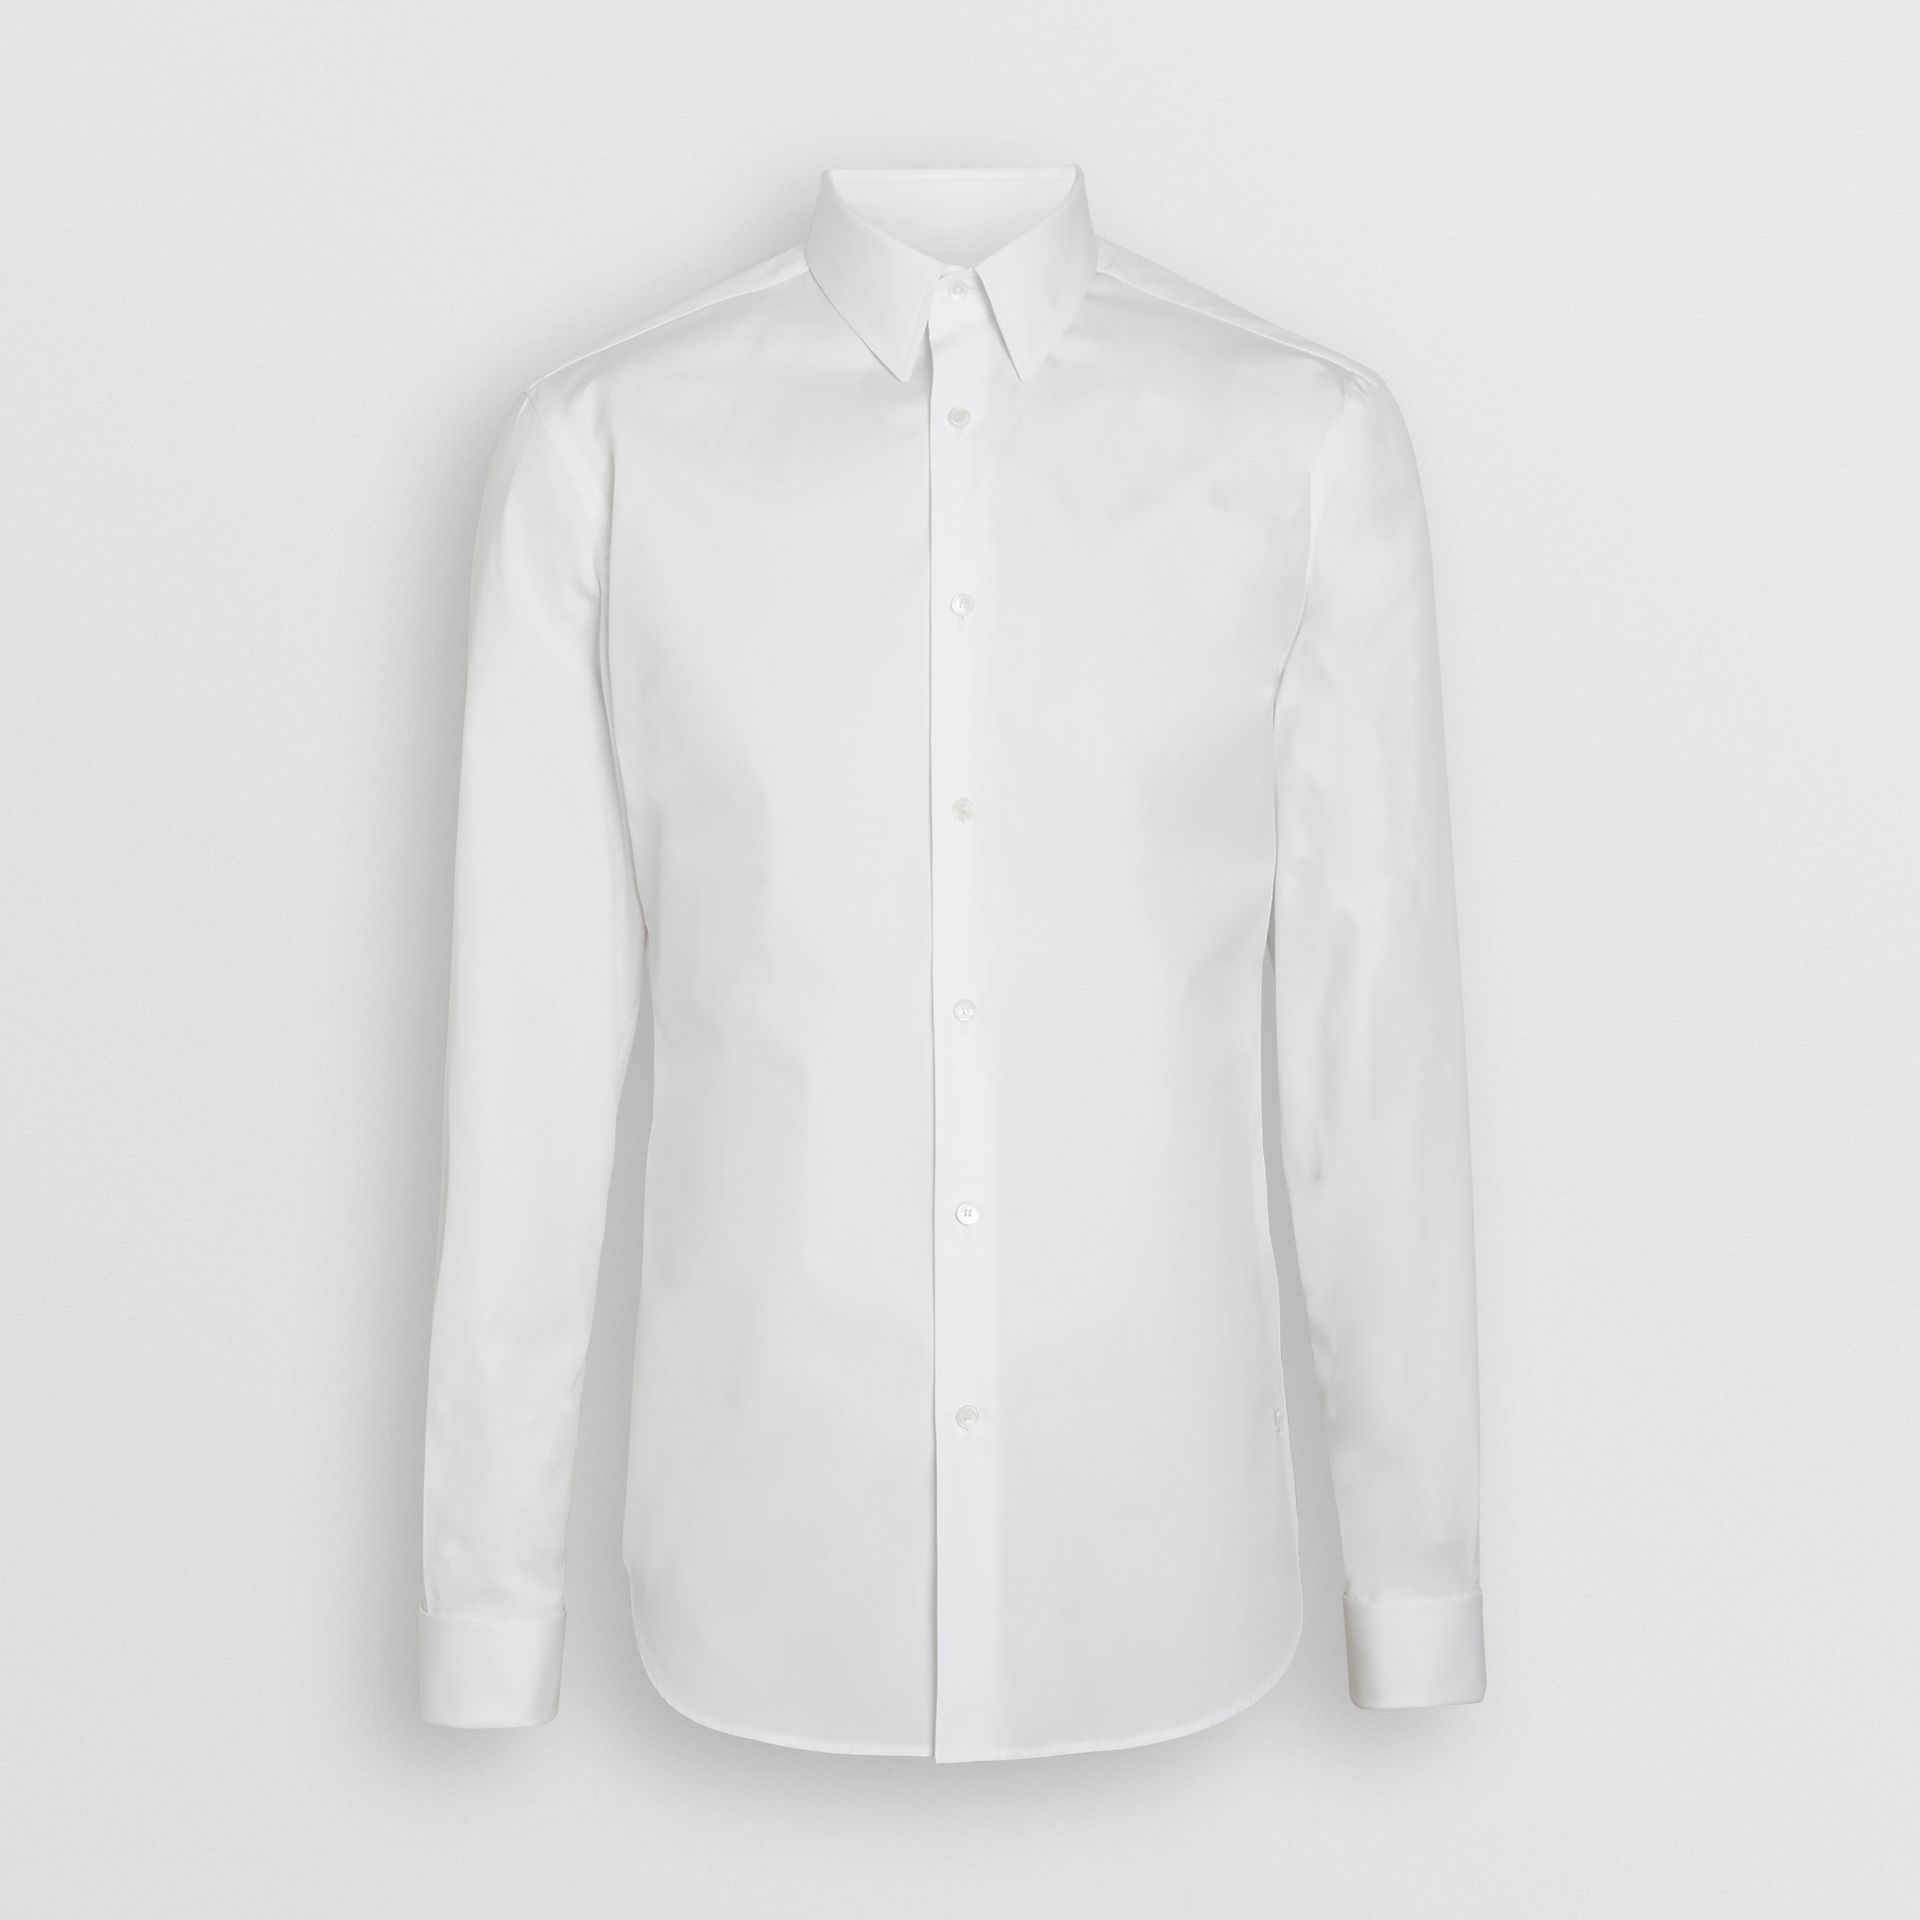 Slim Fit Double Cuff Cotton Poplin Shirt in White - Men | Burberry Hong Kong - gallery image 3